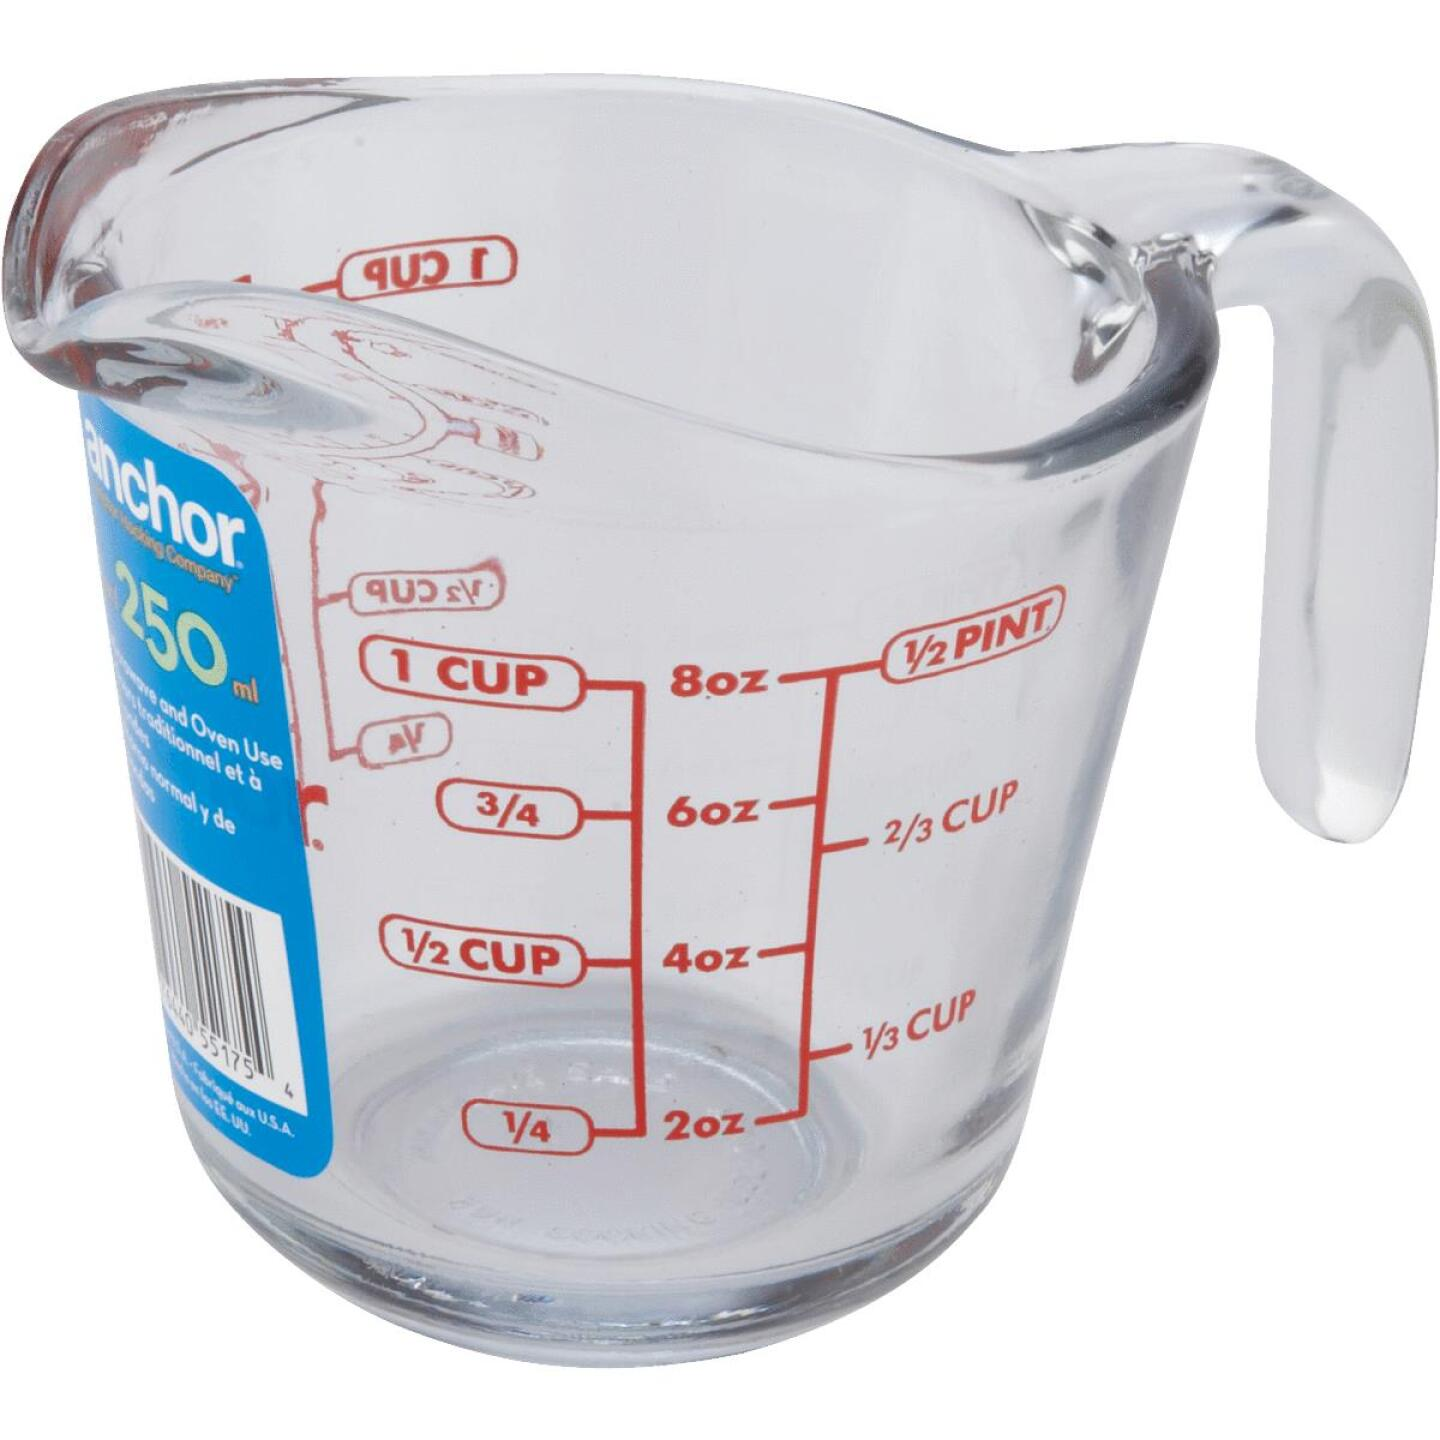 Anchor Hocking 8 Oz. Clear Glass Measuring Cup Image 2